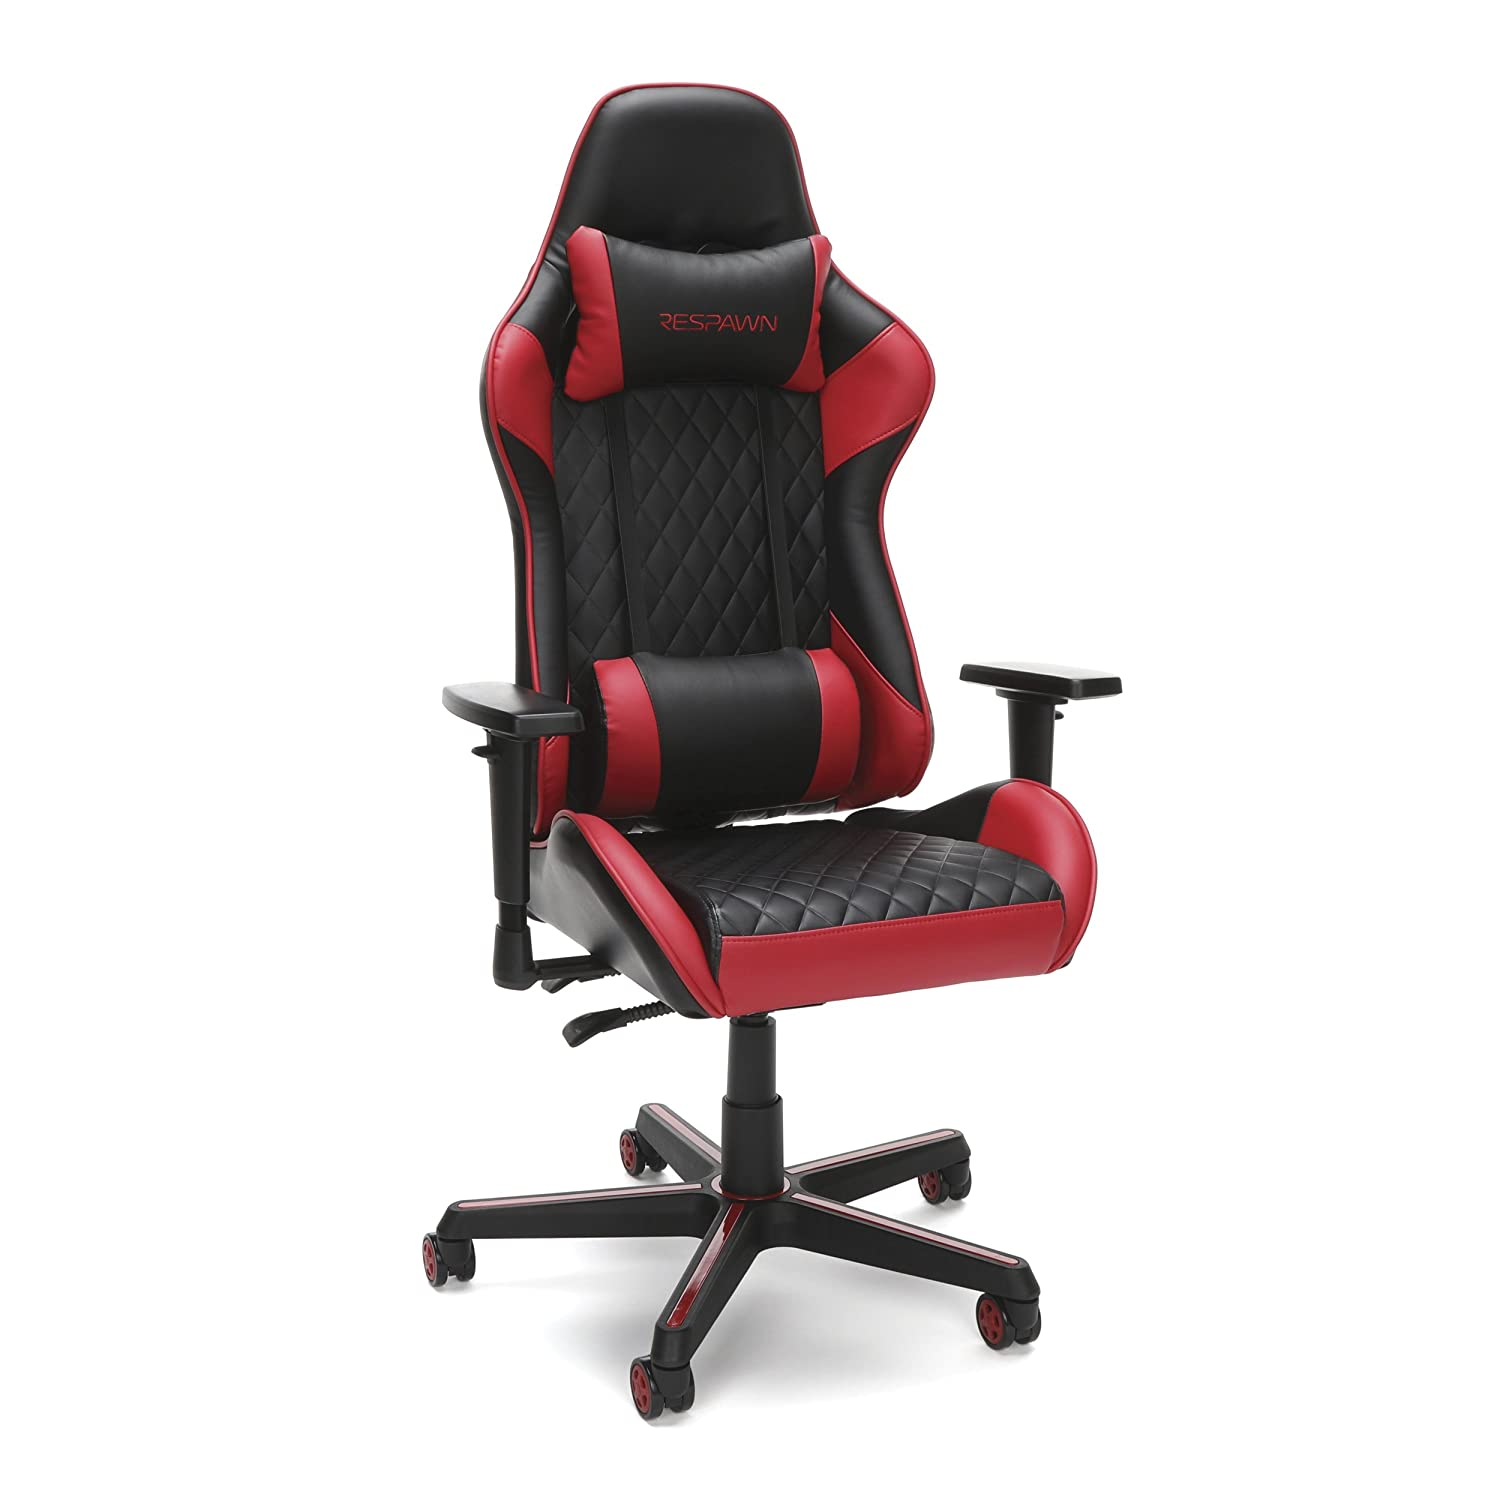 RESPAWN 100 Racing Style Gaming Chair, in Red RSP-100-RED